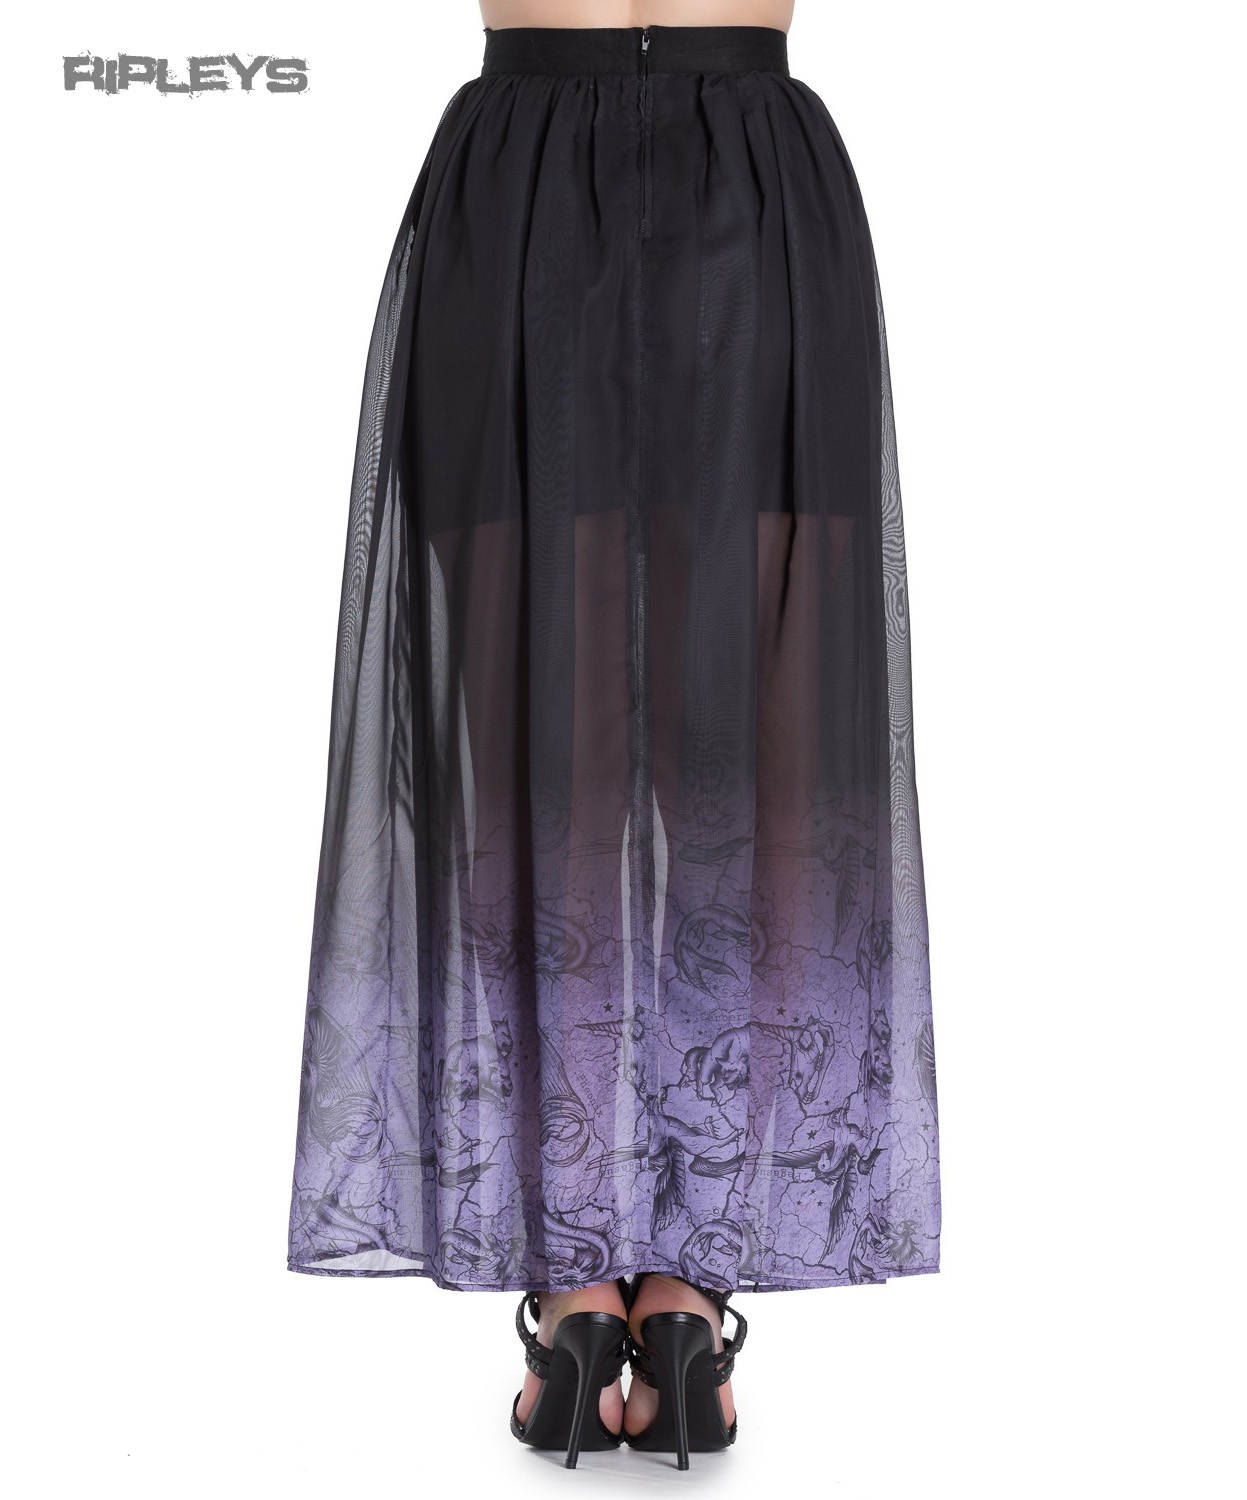 Hell-Bunny-Spin-Doctor-Goth-Purple-Mystical-EVADINE-Maxi-Skirt-All-Sizes thumbnail 12